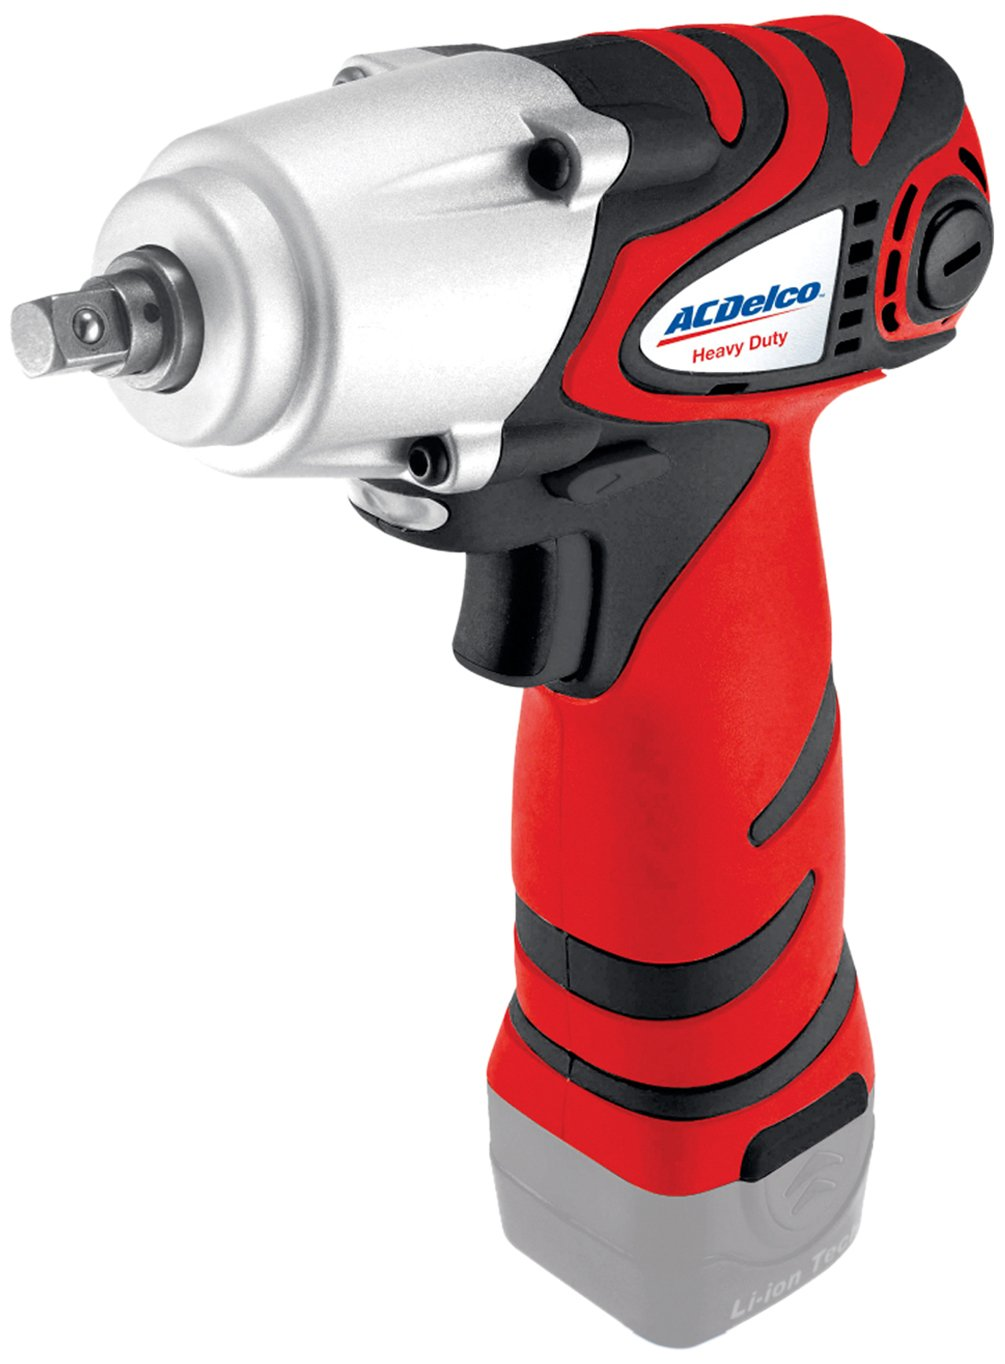 ACDelco Tools ARI1258-3T 3 8 Impact Wrench